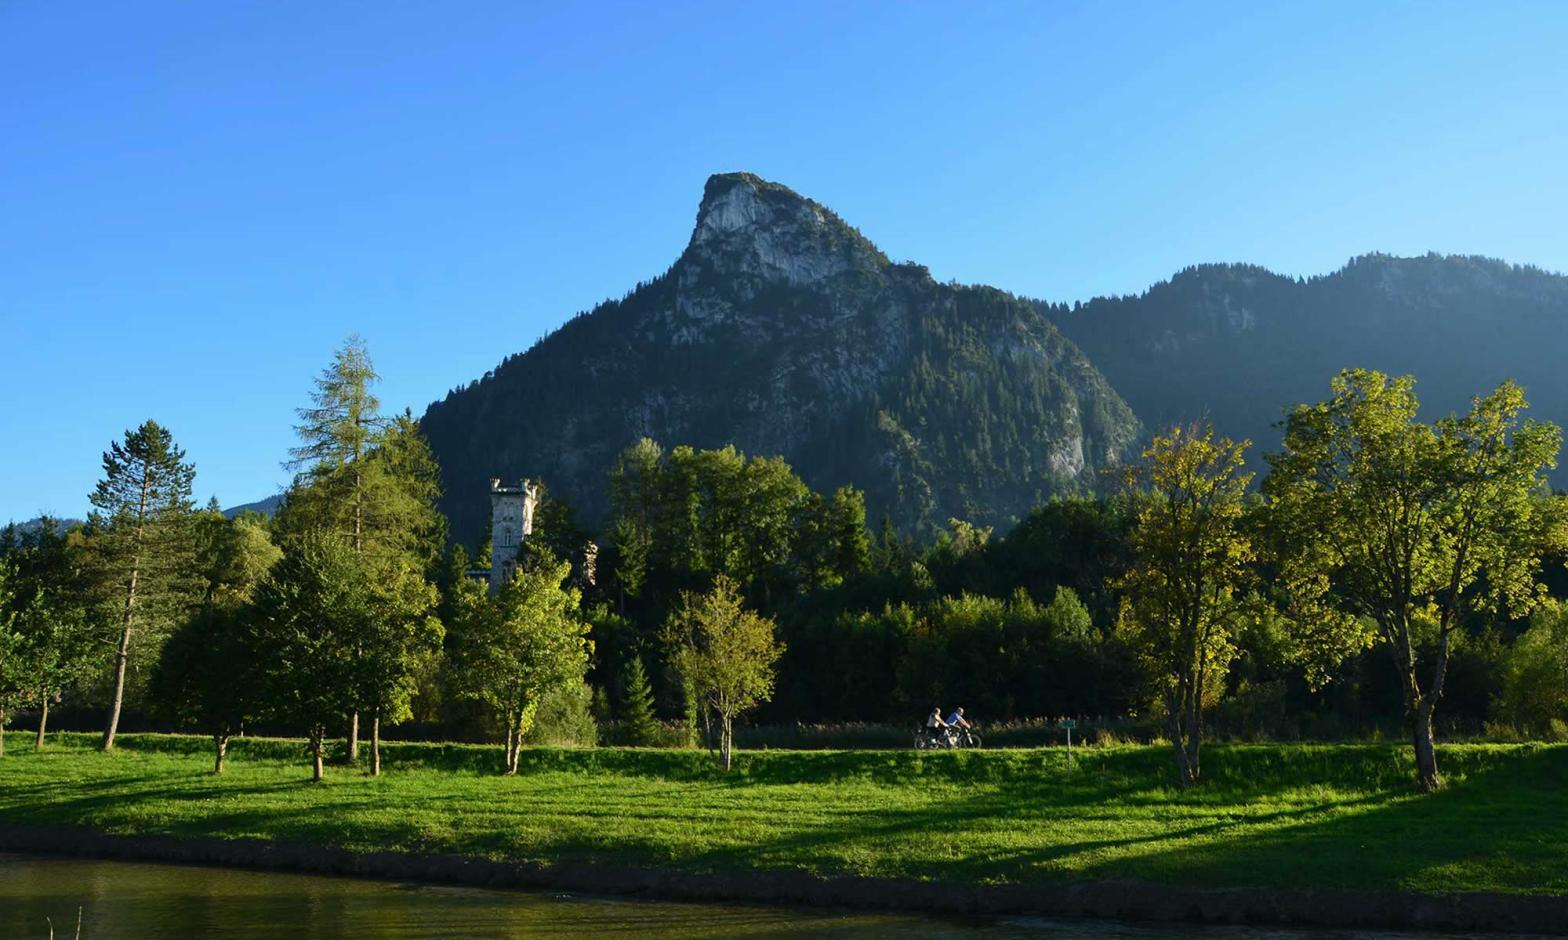 A pair of bicyclists ride on a pedestrian lane, in the shadows of Mount Kofel, a mountain peak in Oberammergau, Germany.